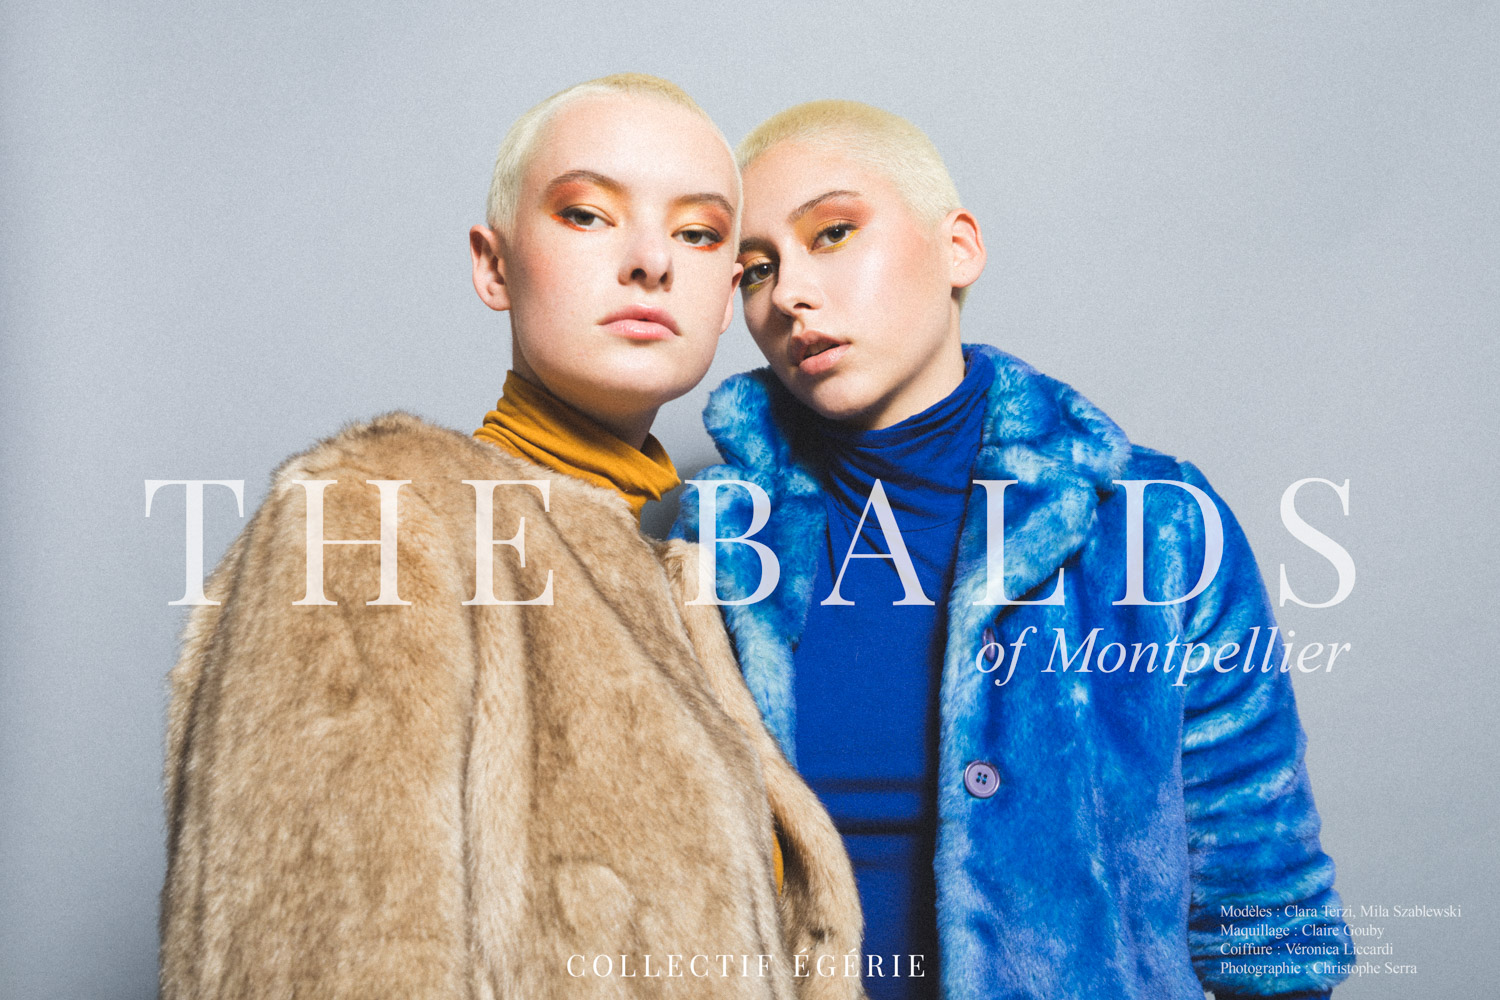 The Balds of Montpellier